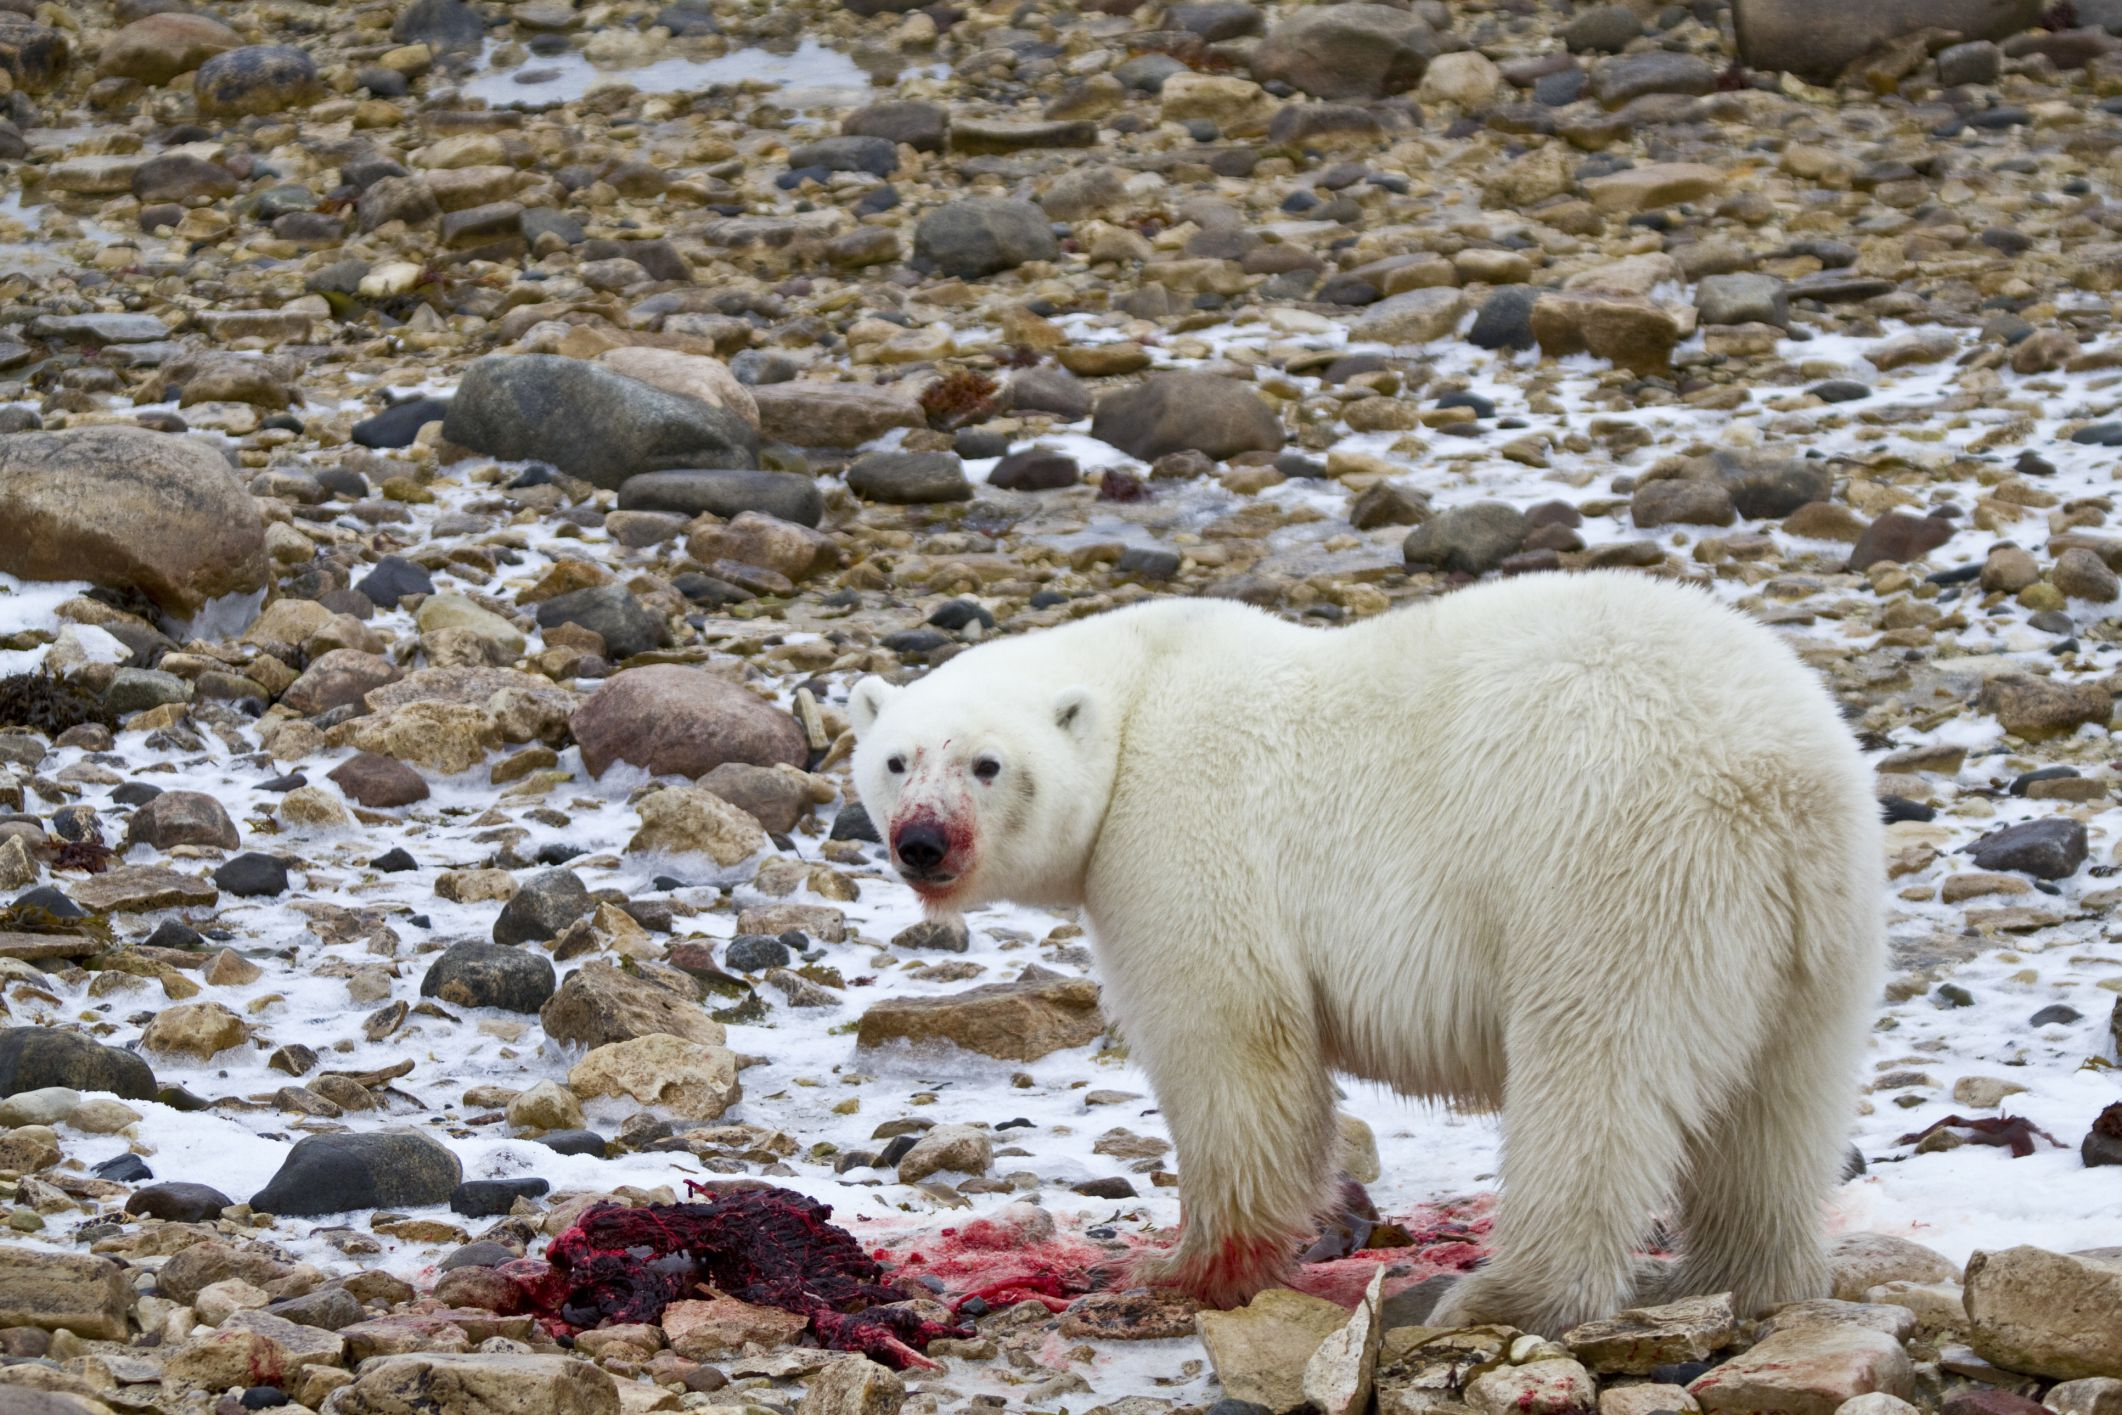 The Typical Diet of a Polar Bear